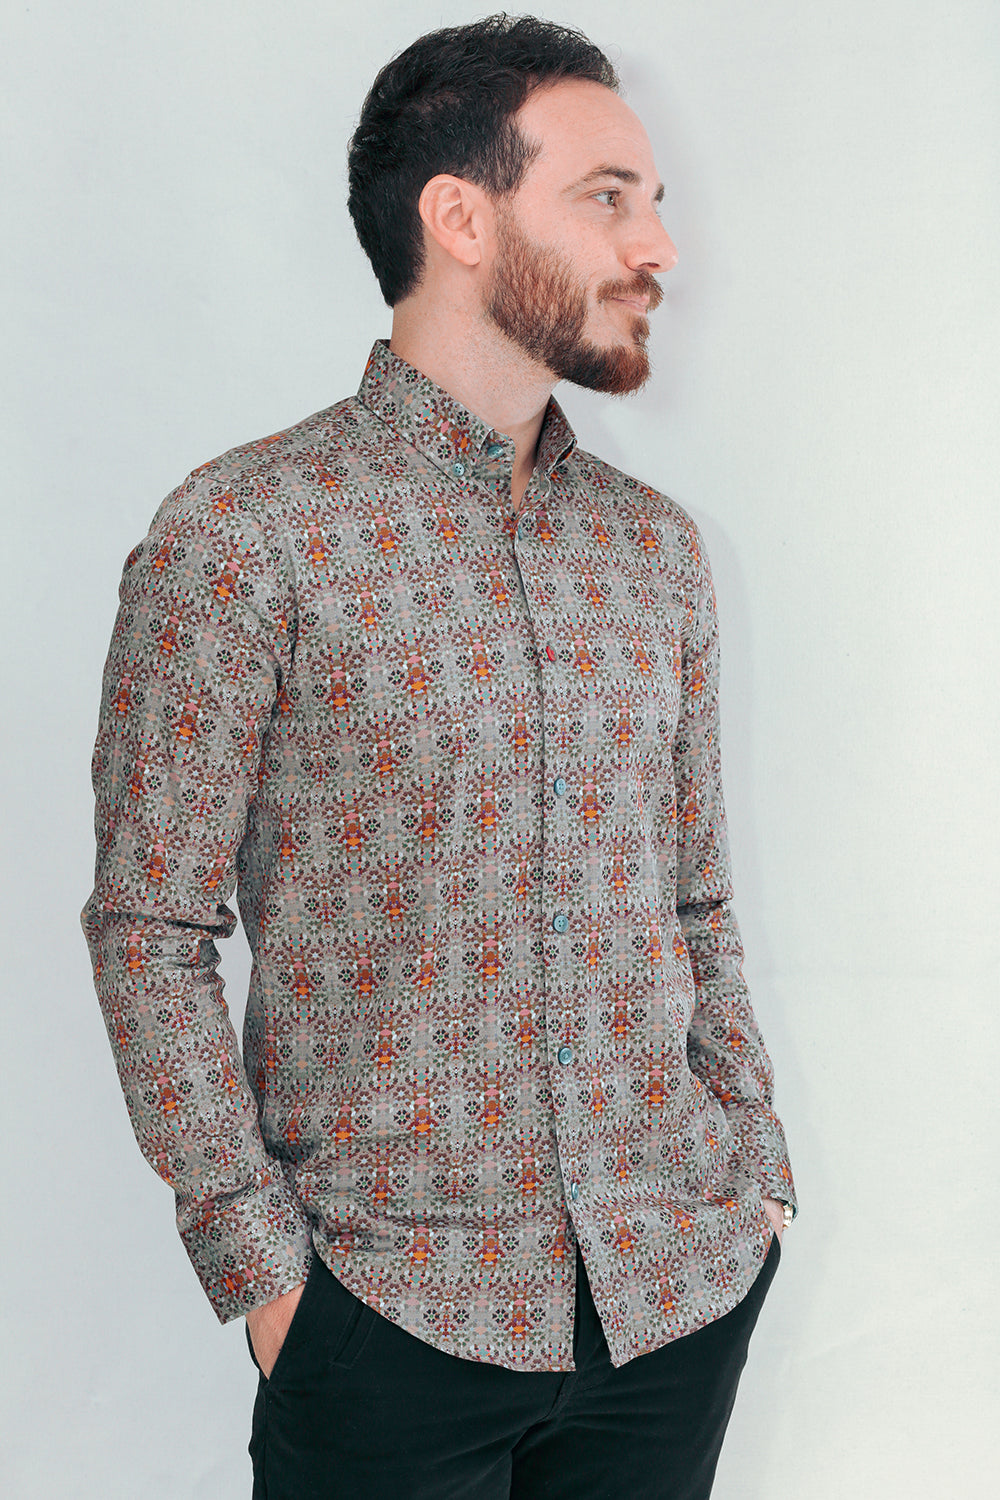 Tripoli Designer Shirts In Multi Coloured Mediterranean Prints